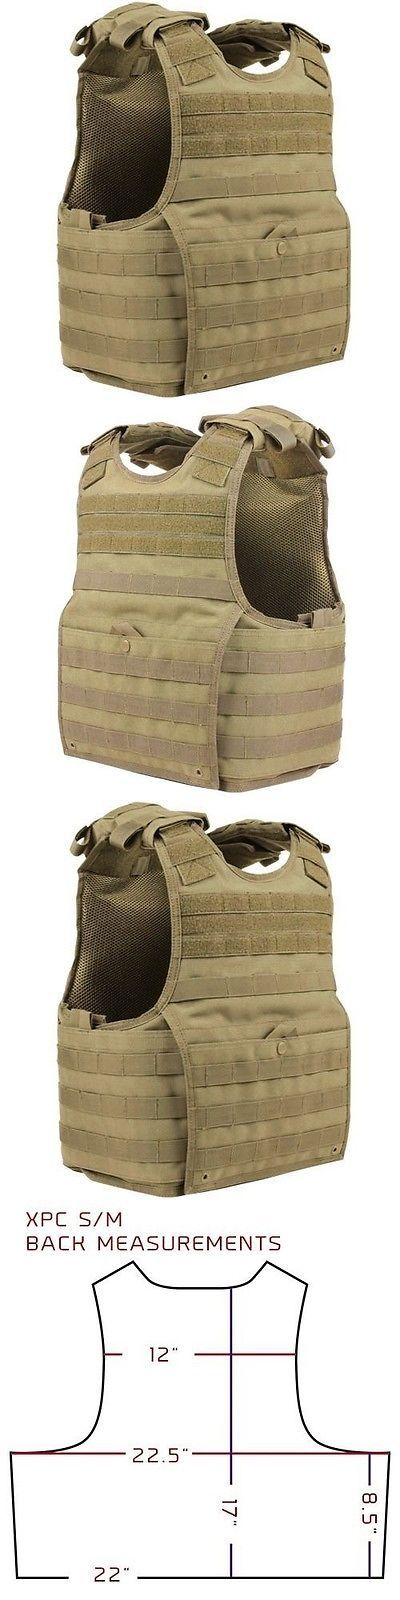 Chest Rigs and Tactical Vests 177891: Condor Xpc Exo Plate Carrier Tan Infantry Chest Armor Molle Tactical Vest S-M -> BUY IT NOW ONLY: $73.95 on eBay!